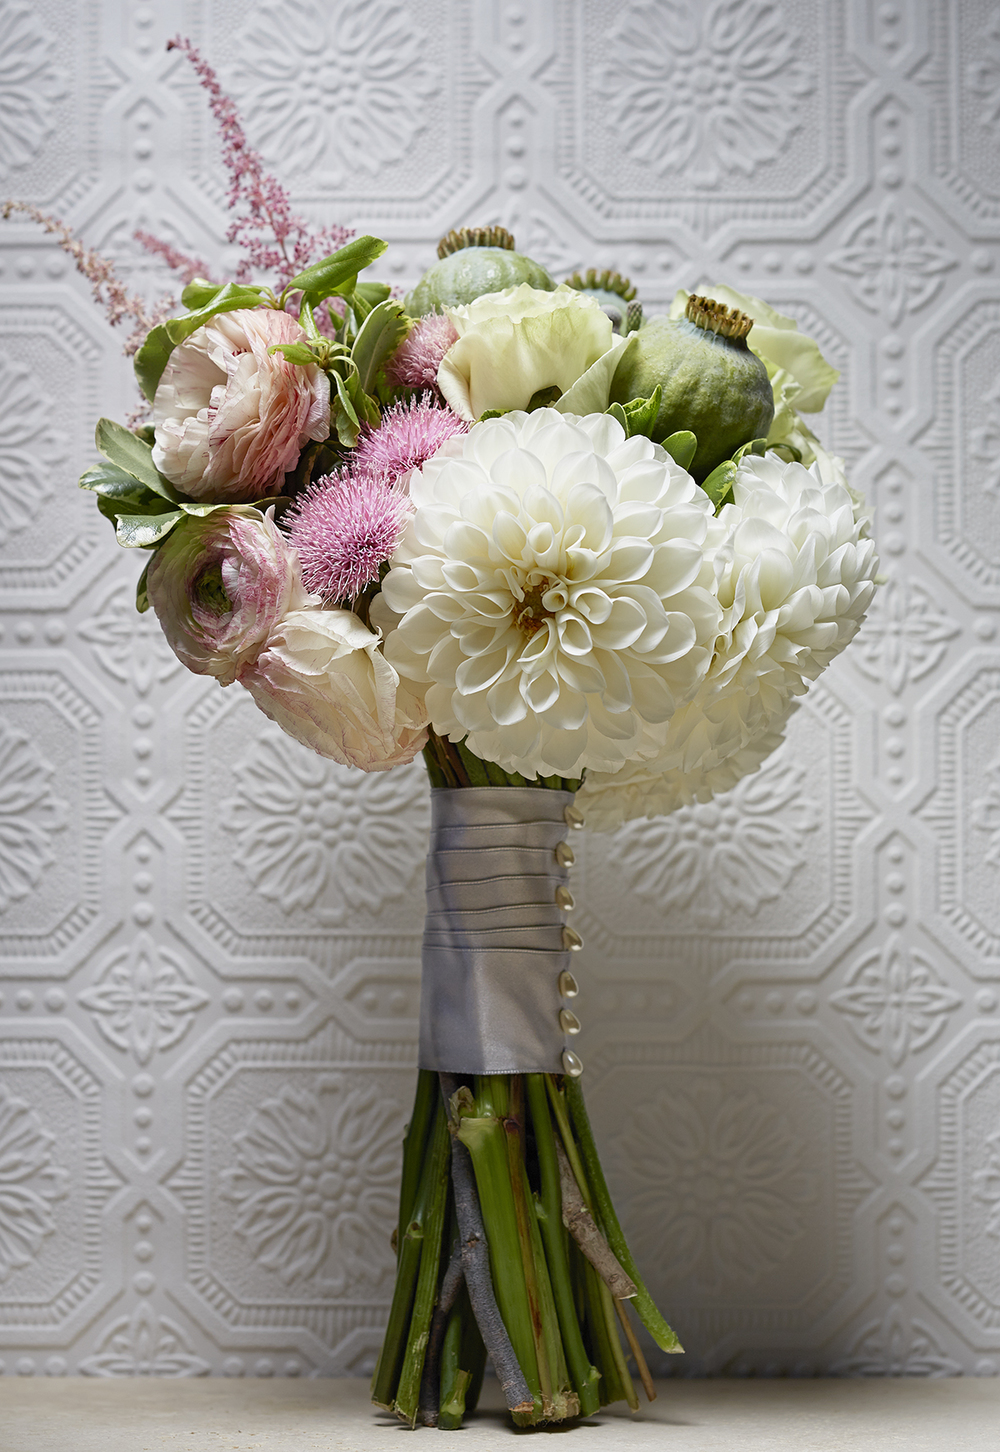 Regal White | Architectural bouquet featuring dahlias & poppy pods